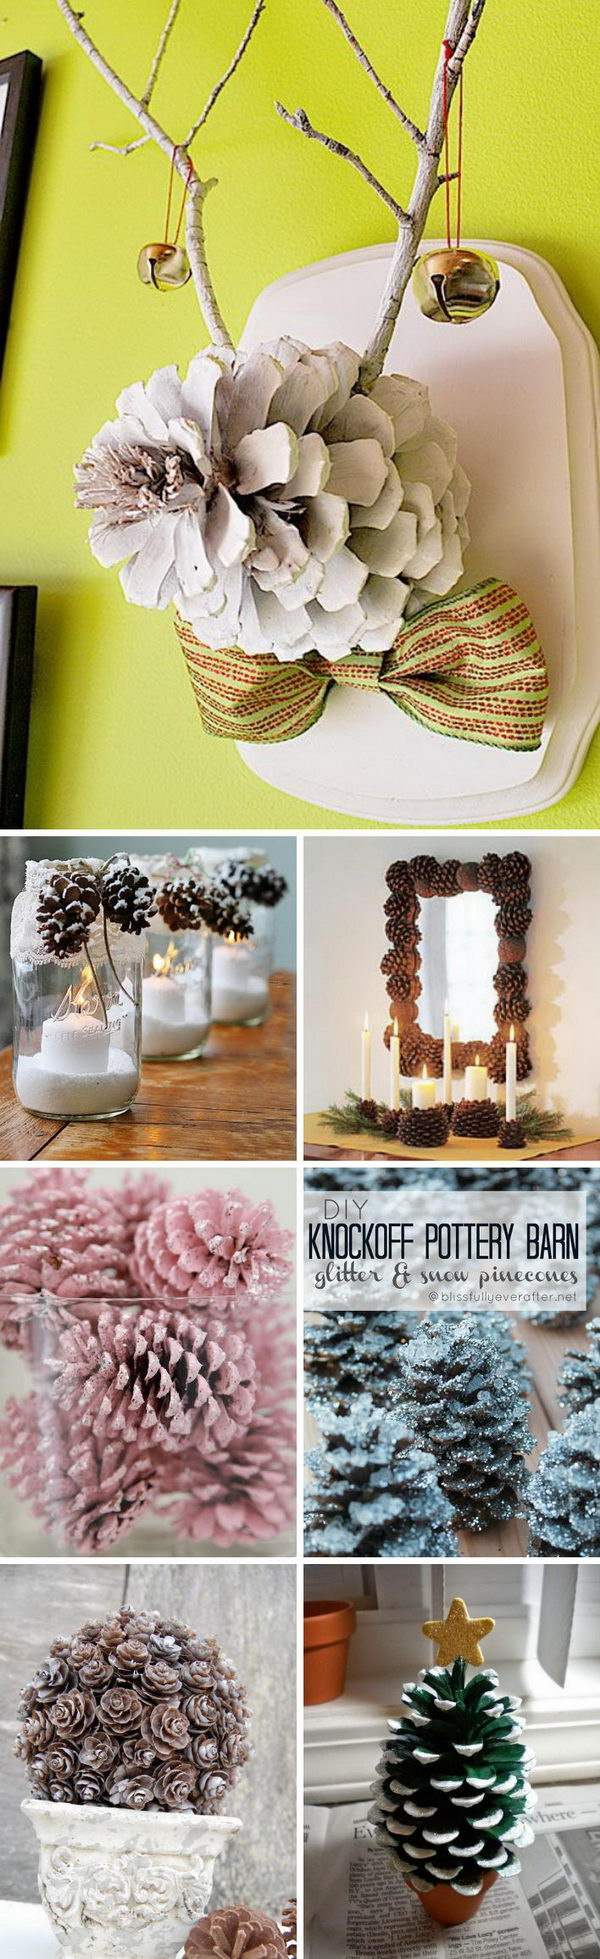 30 Beautiful Pinecone Decorating Ideas amp Tutorials For Holiday